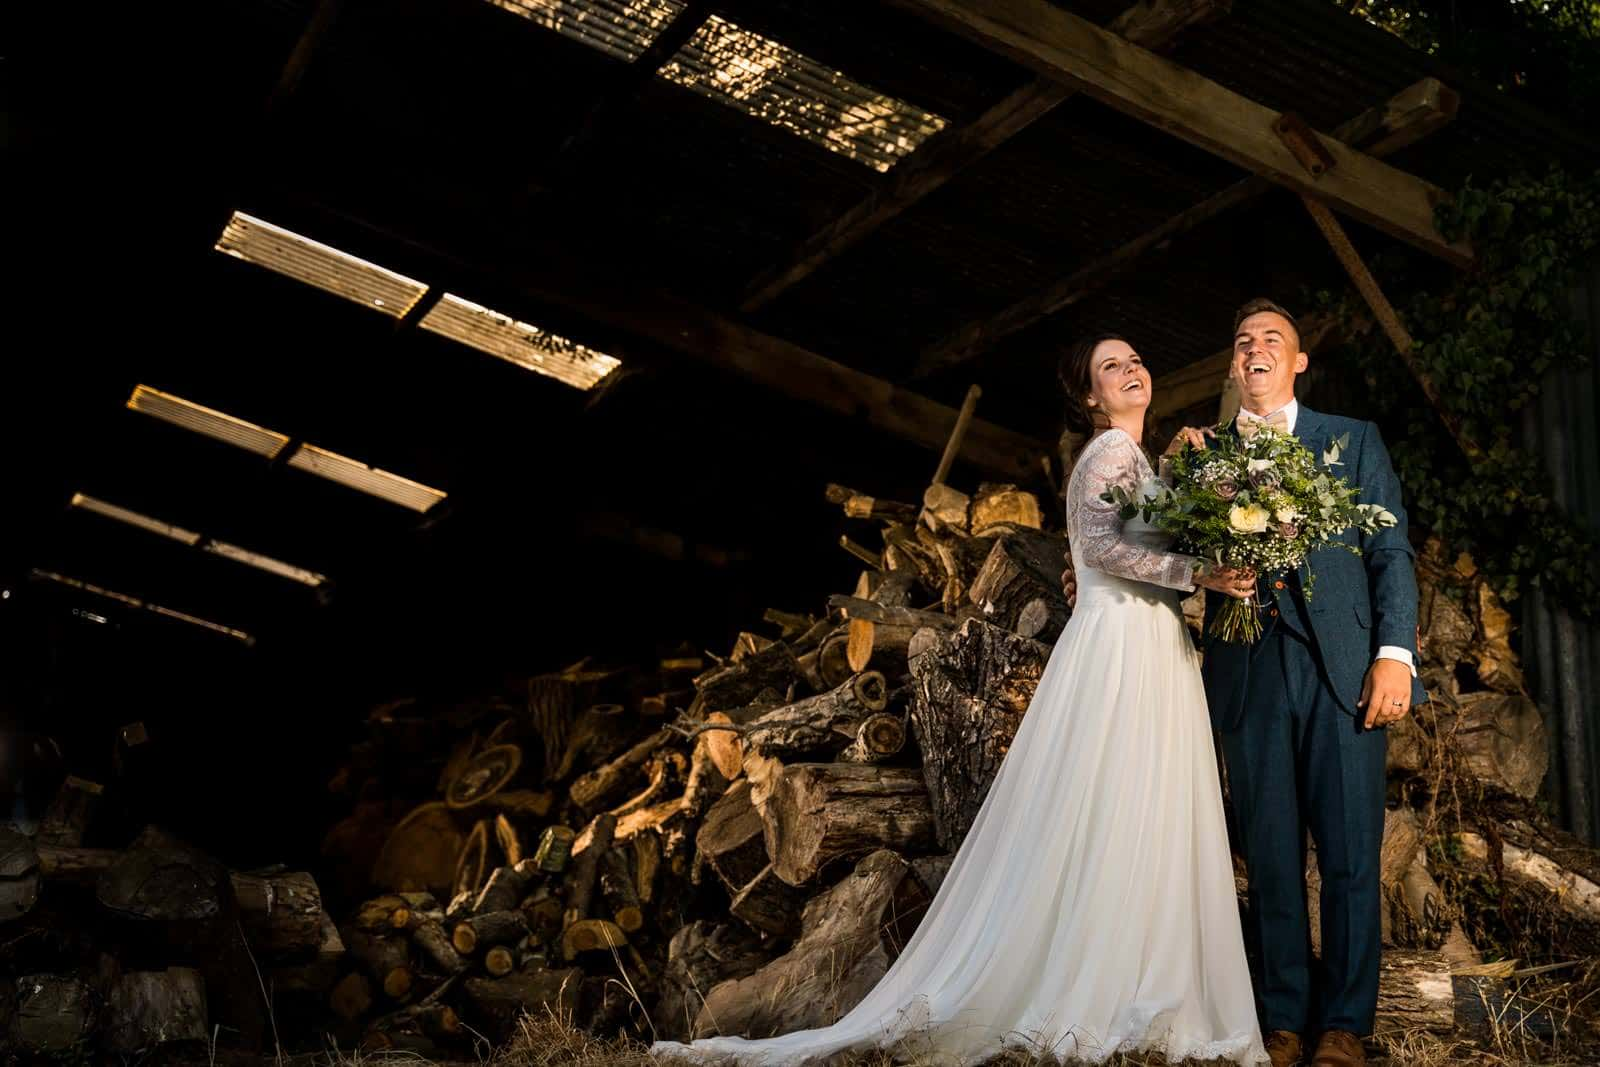 Bassmead wedding photography of couple standing in the wood store